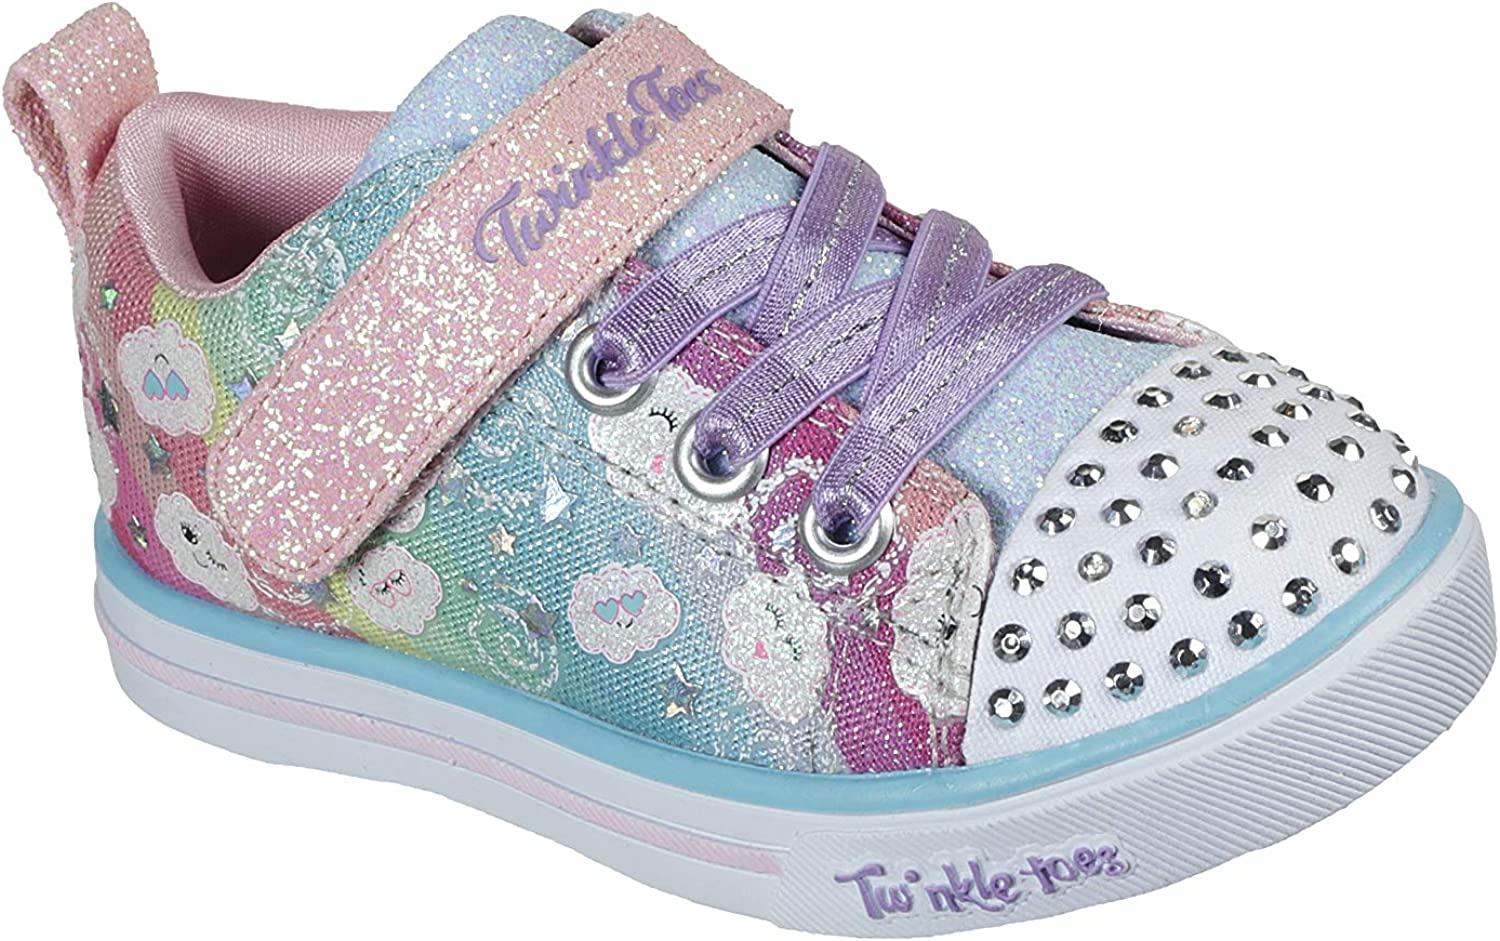 Ranking TOP3 Skechers Unisex-Child Sparkle Lite-Rainbow Shines Sneaker Online limited product